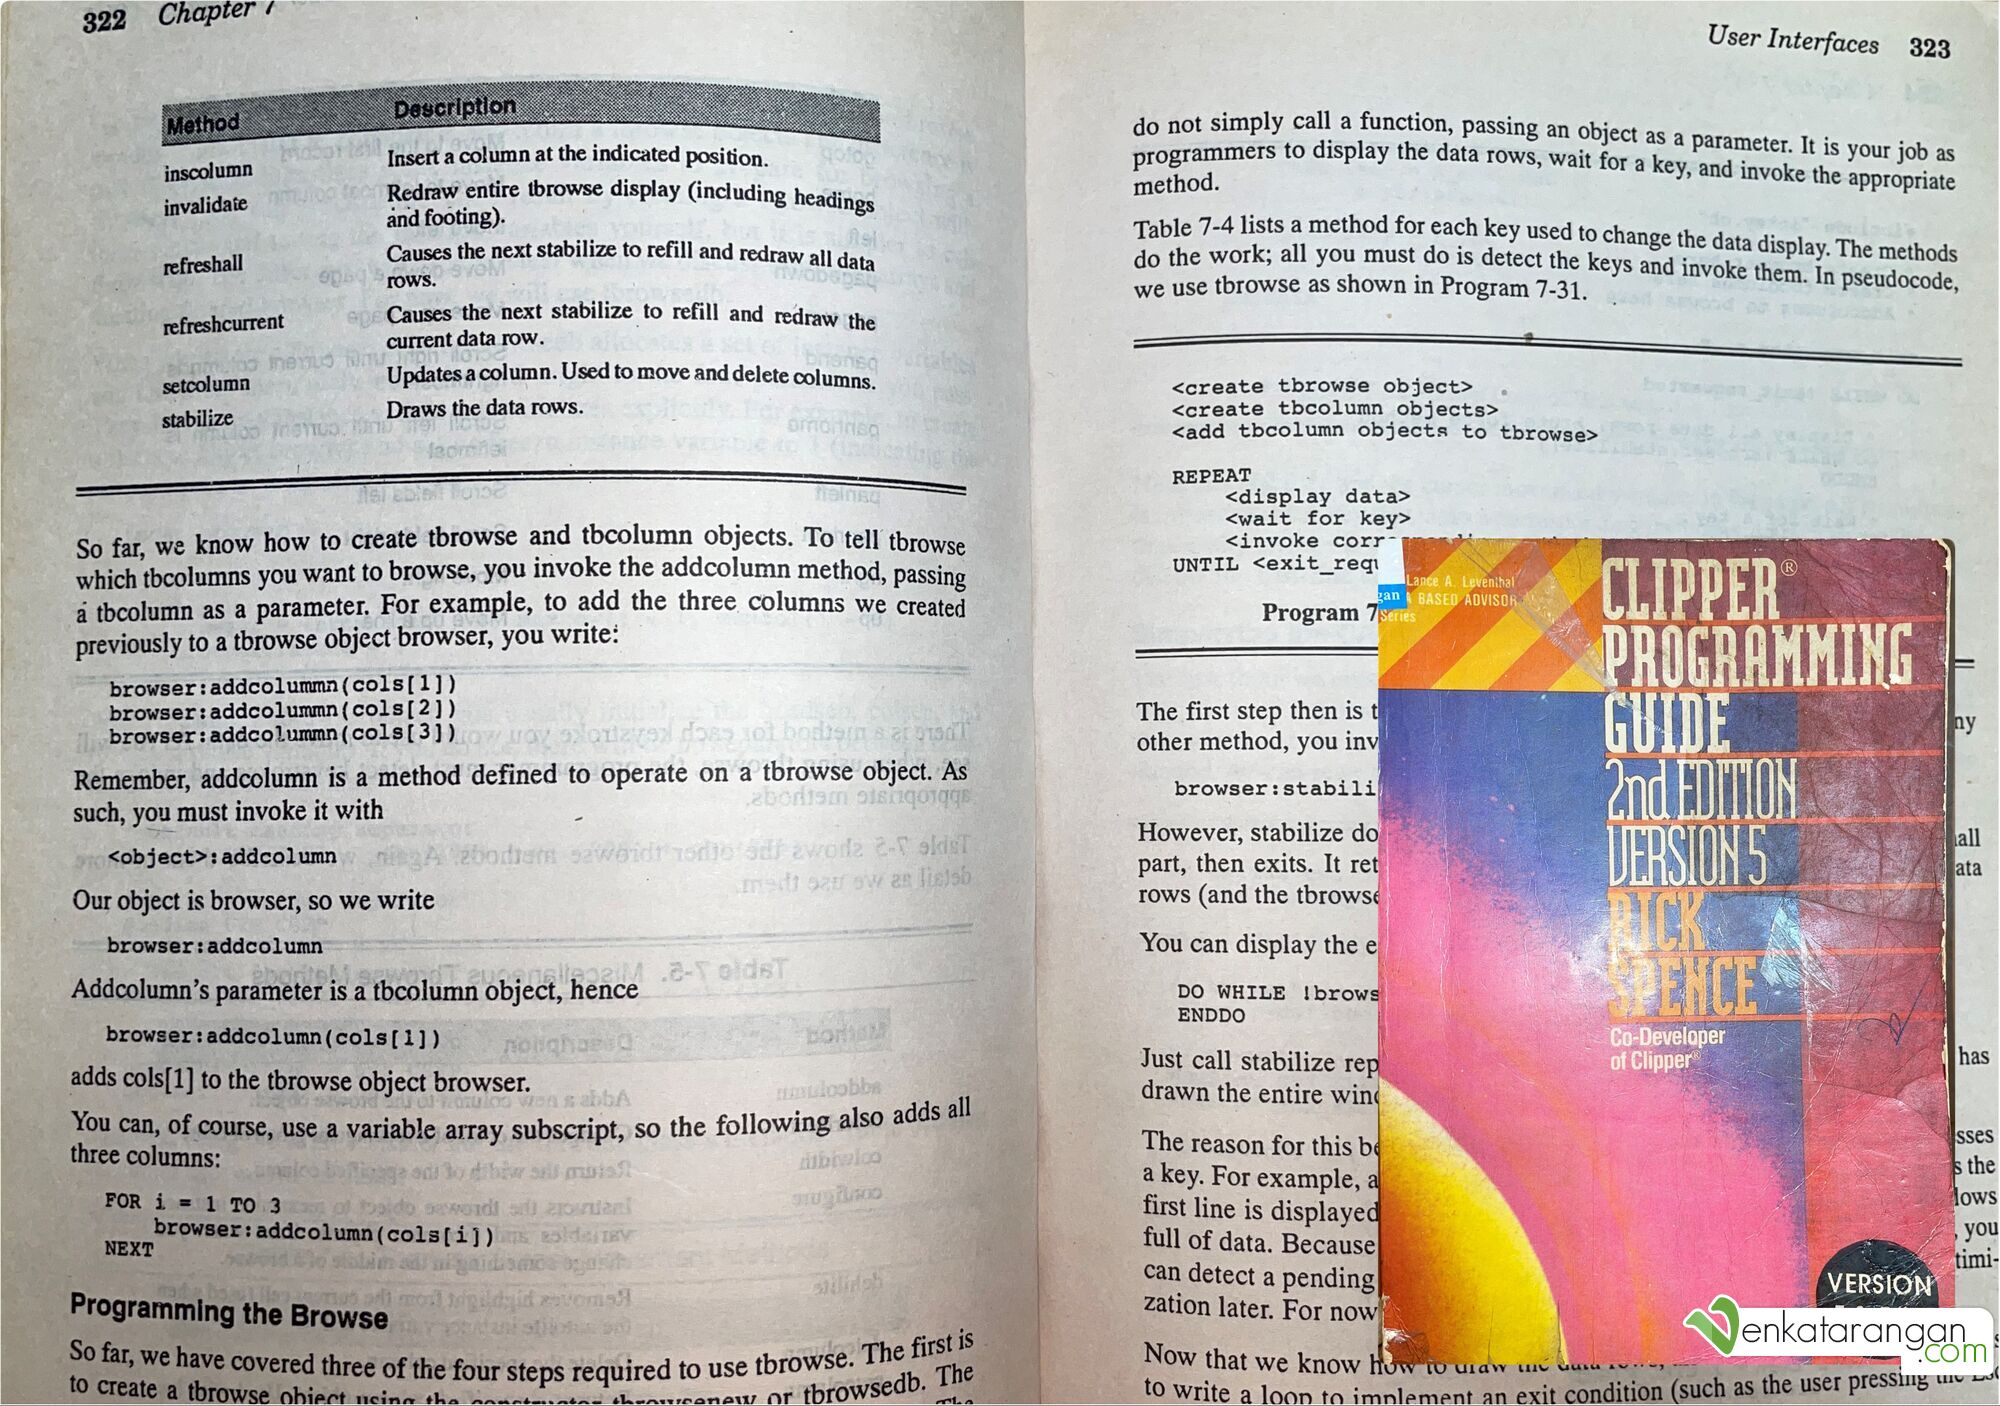 Clipper Programming Guide 2nd Edition Version 5 by Rick Spence, Co-Developer of Clipper